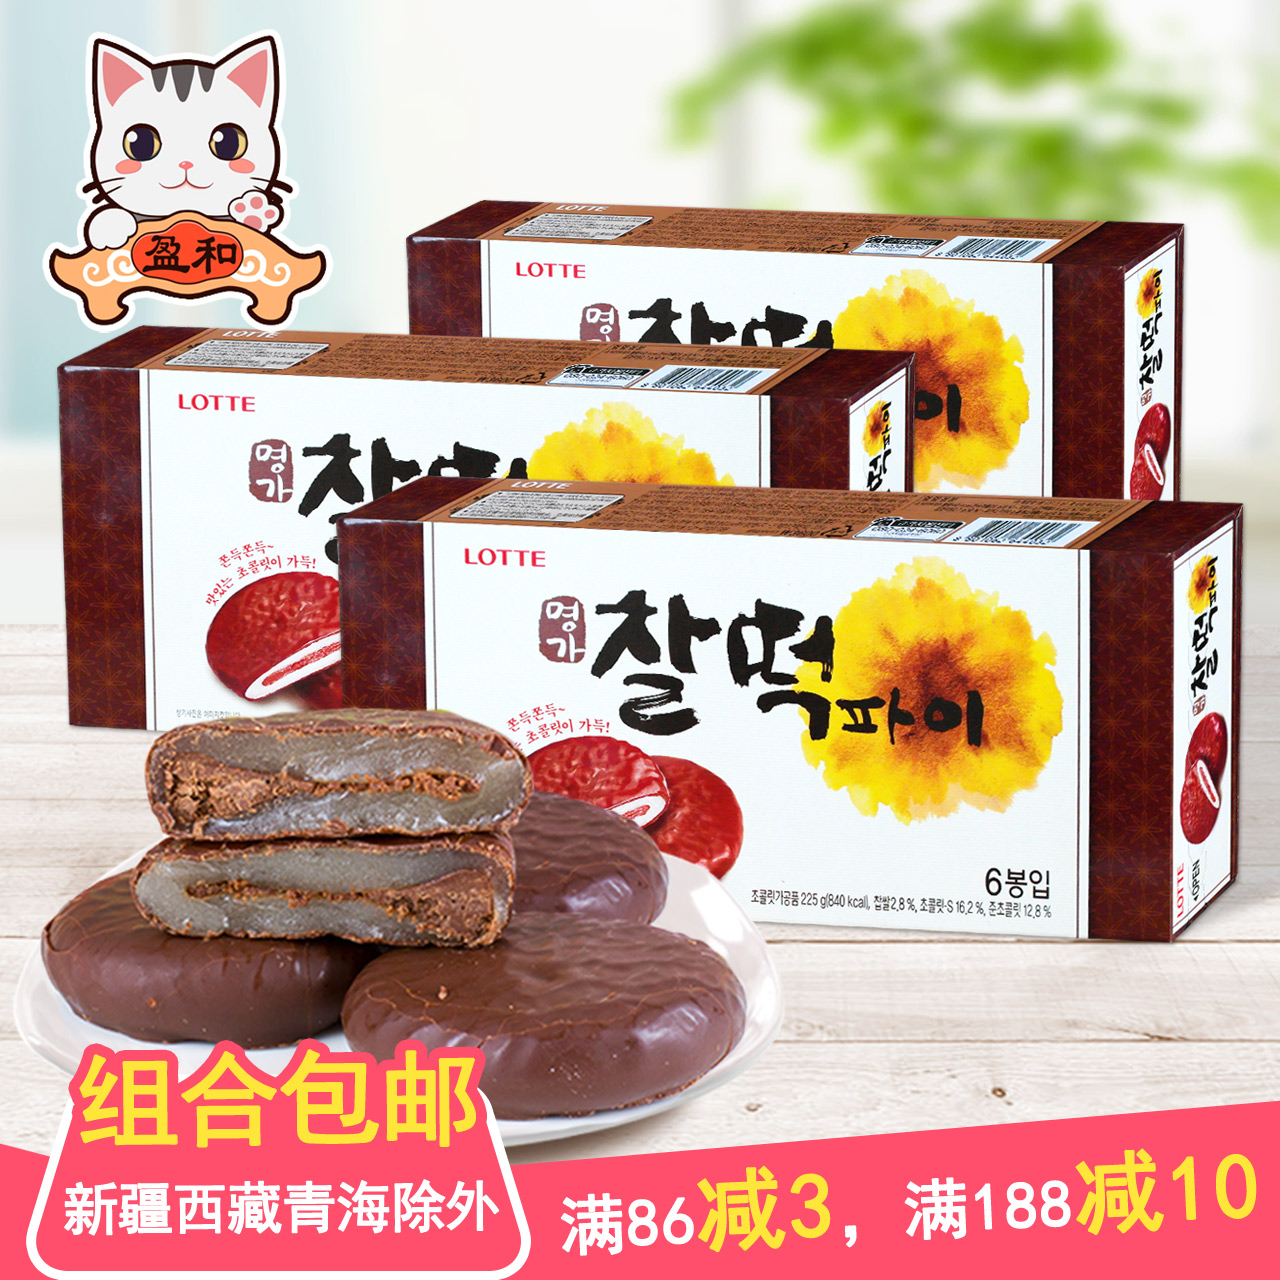 Free shipping south korea lotte lotte chocolate rice cake chocolate pie pastry 225g * 3 boxes imported from korea